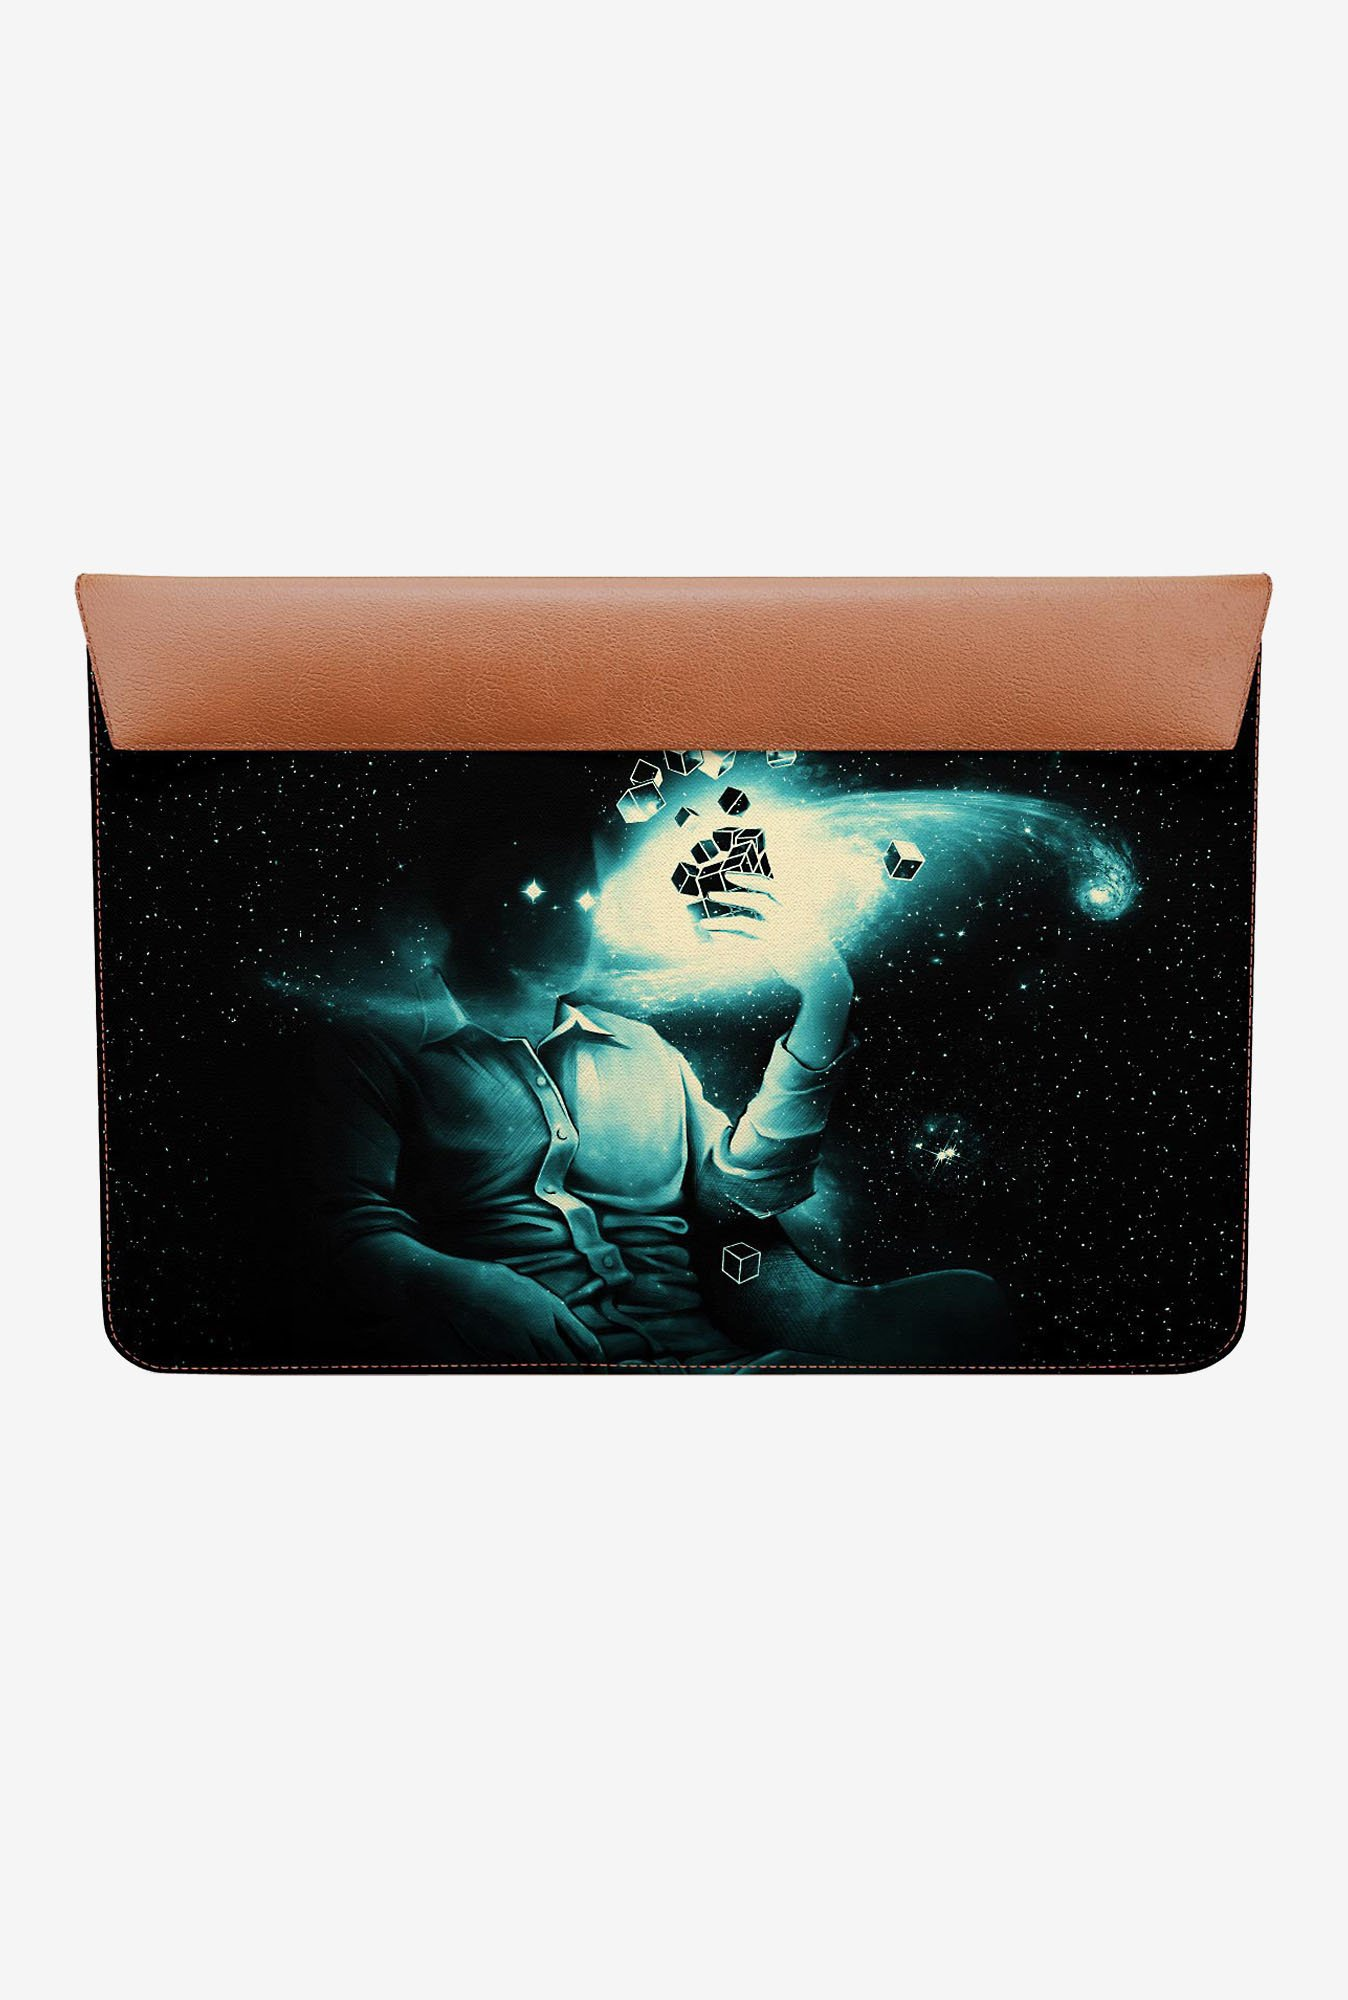 DailyObjects The Solution MacBook Air 11 Envelope Sleeve